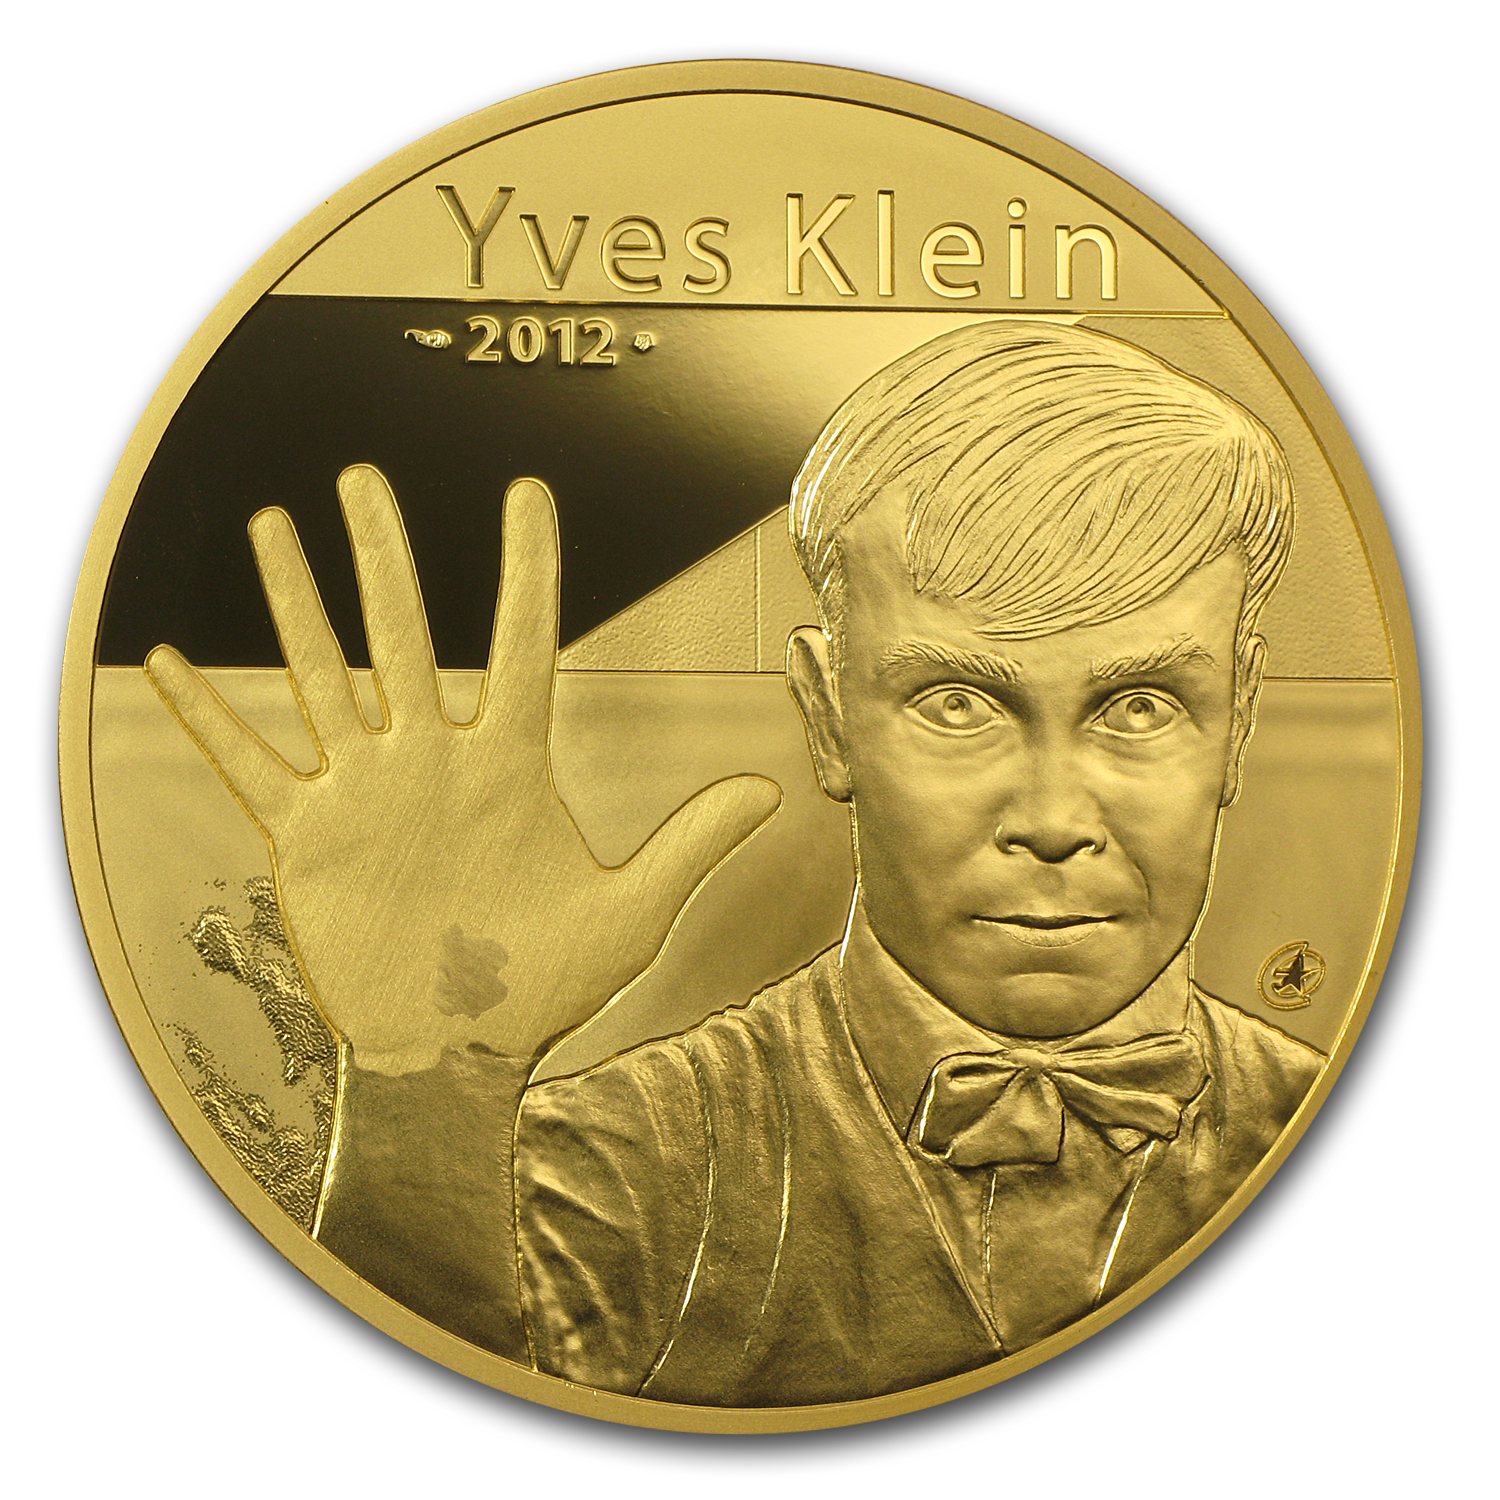 2012 France 5 oz Proof Gold European Program Yves Klein